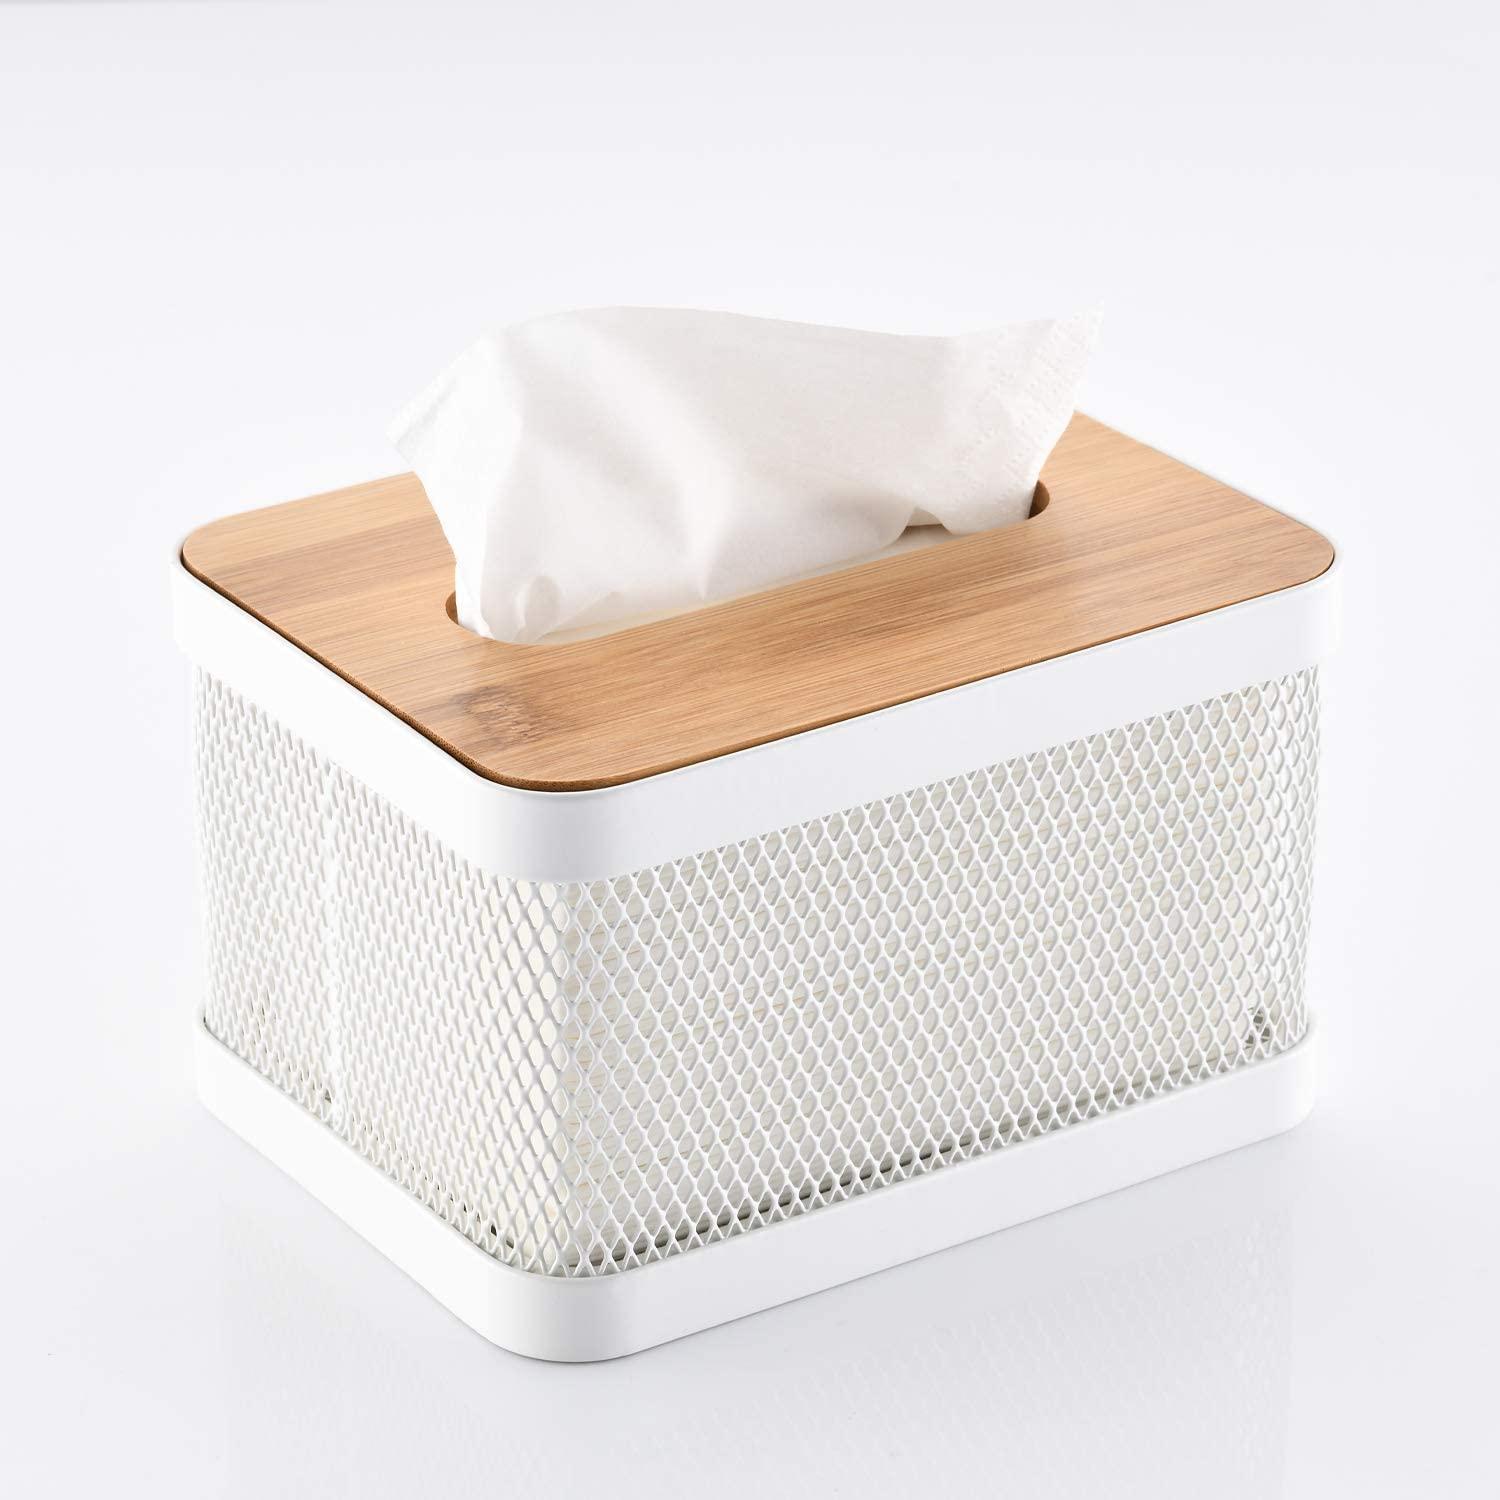 HILFA Modern Square Metal Paper Facial Tissue Box Cover Holder for Bathroom Vanity Countertops, Bedroom Dressers, Night Stands, Desks and Tables,1814 (White)